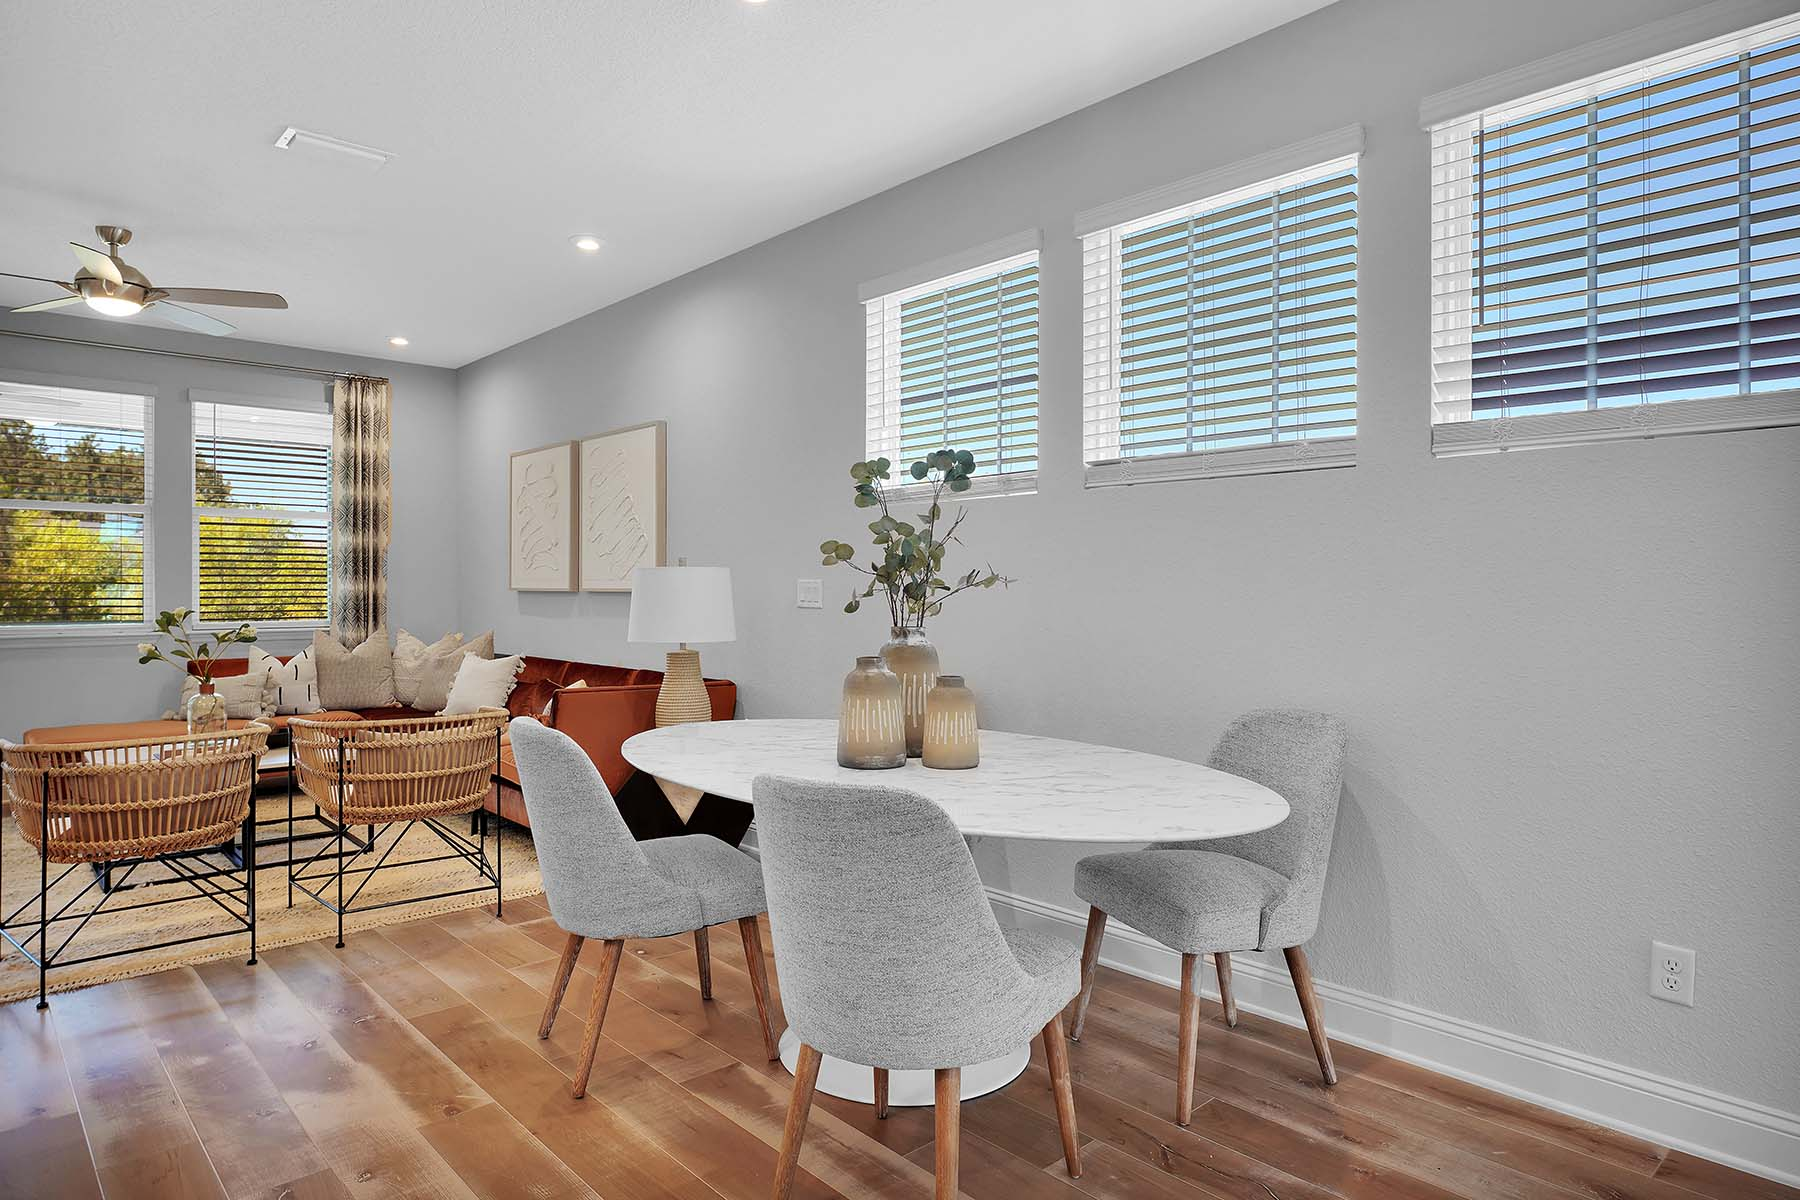 Waverly Plan Dining at Pablo Cove in Jacksonville Florida by Mattamy Homes